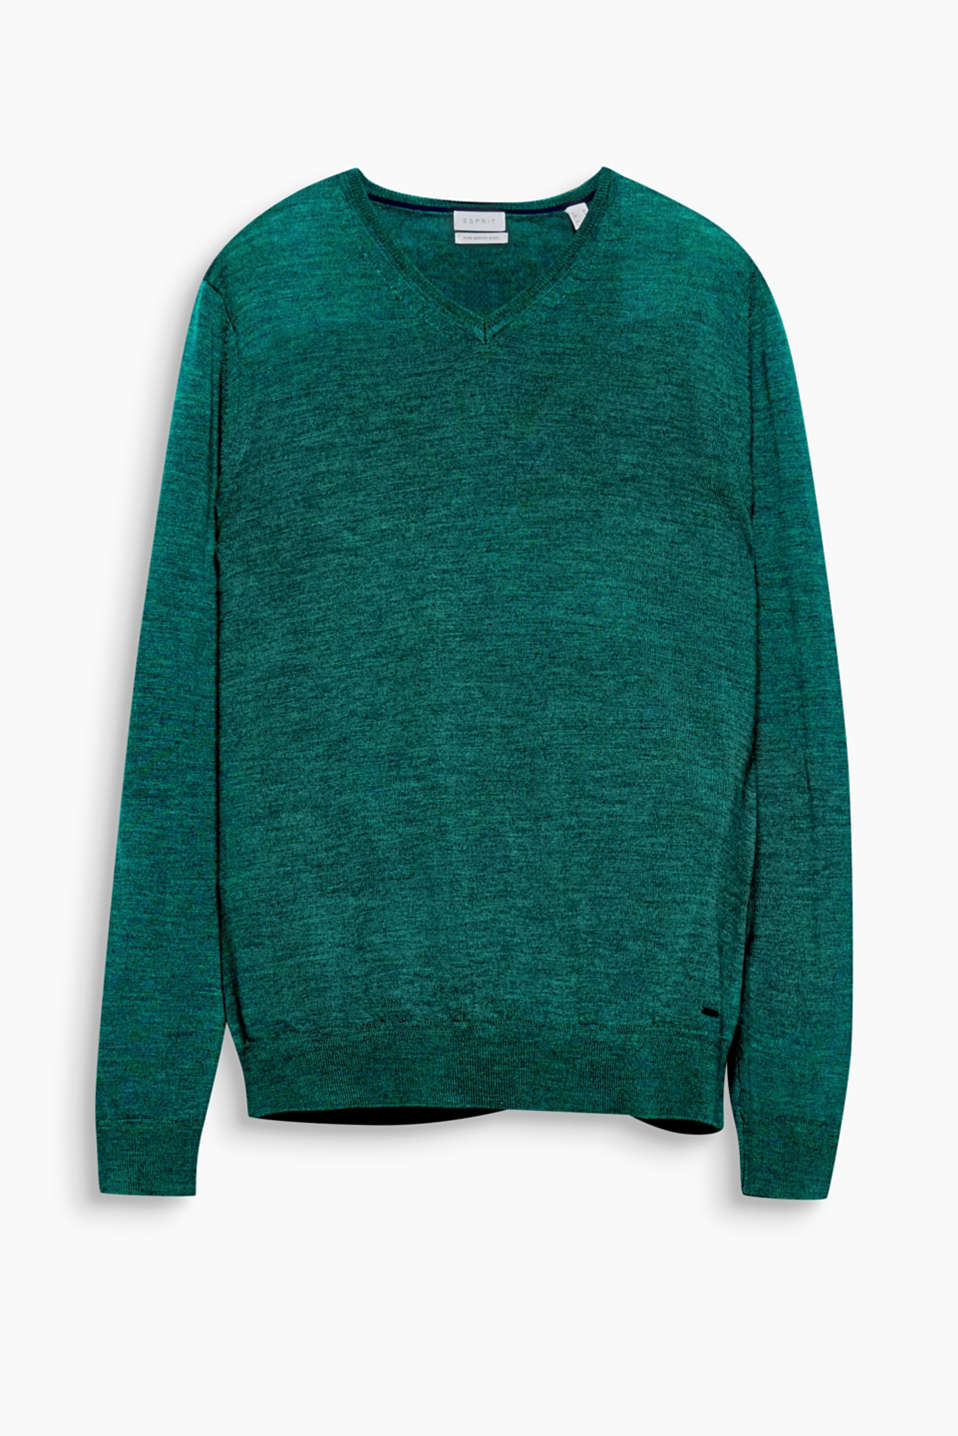 High-quality, fine-knit yarn composed of pure merino wool and exquisite details make this jumper a fashion classic.